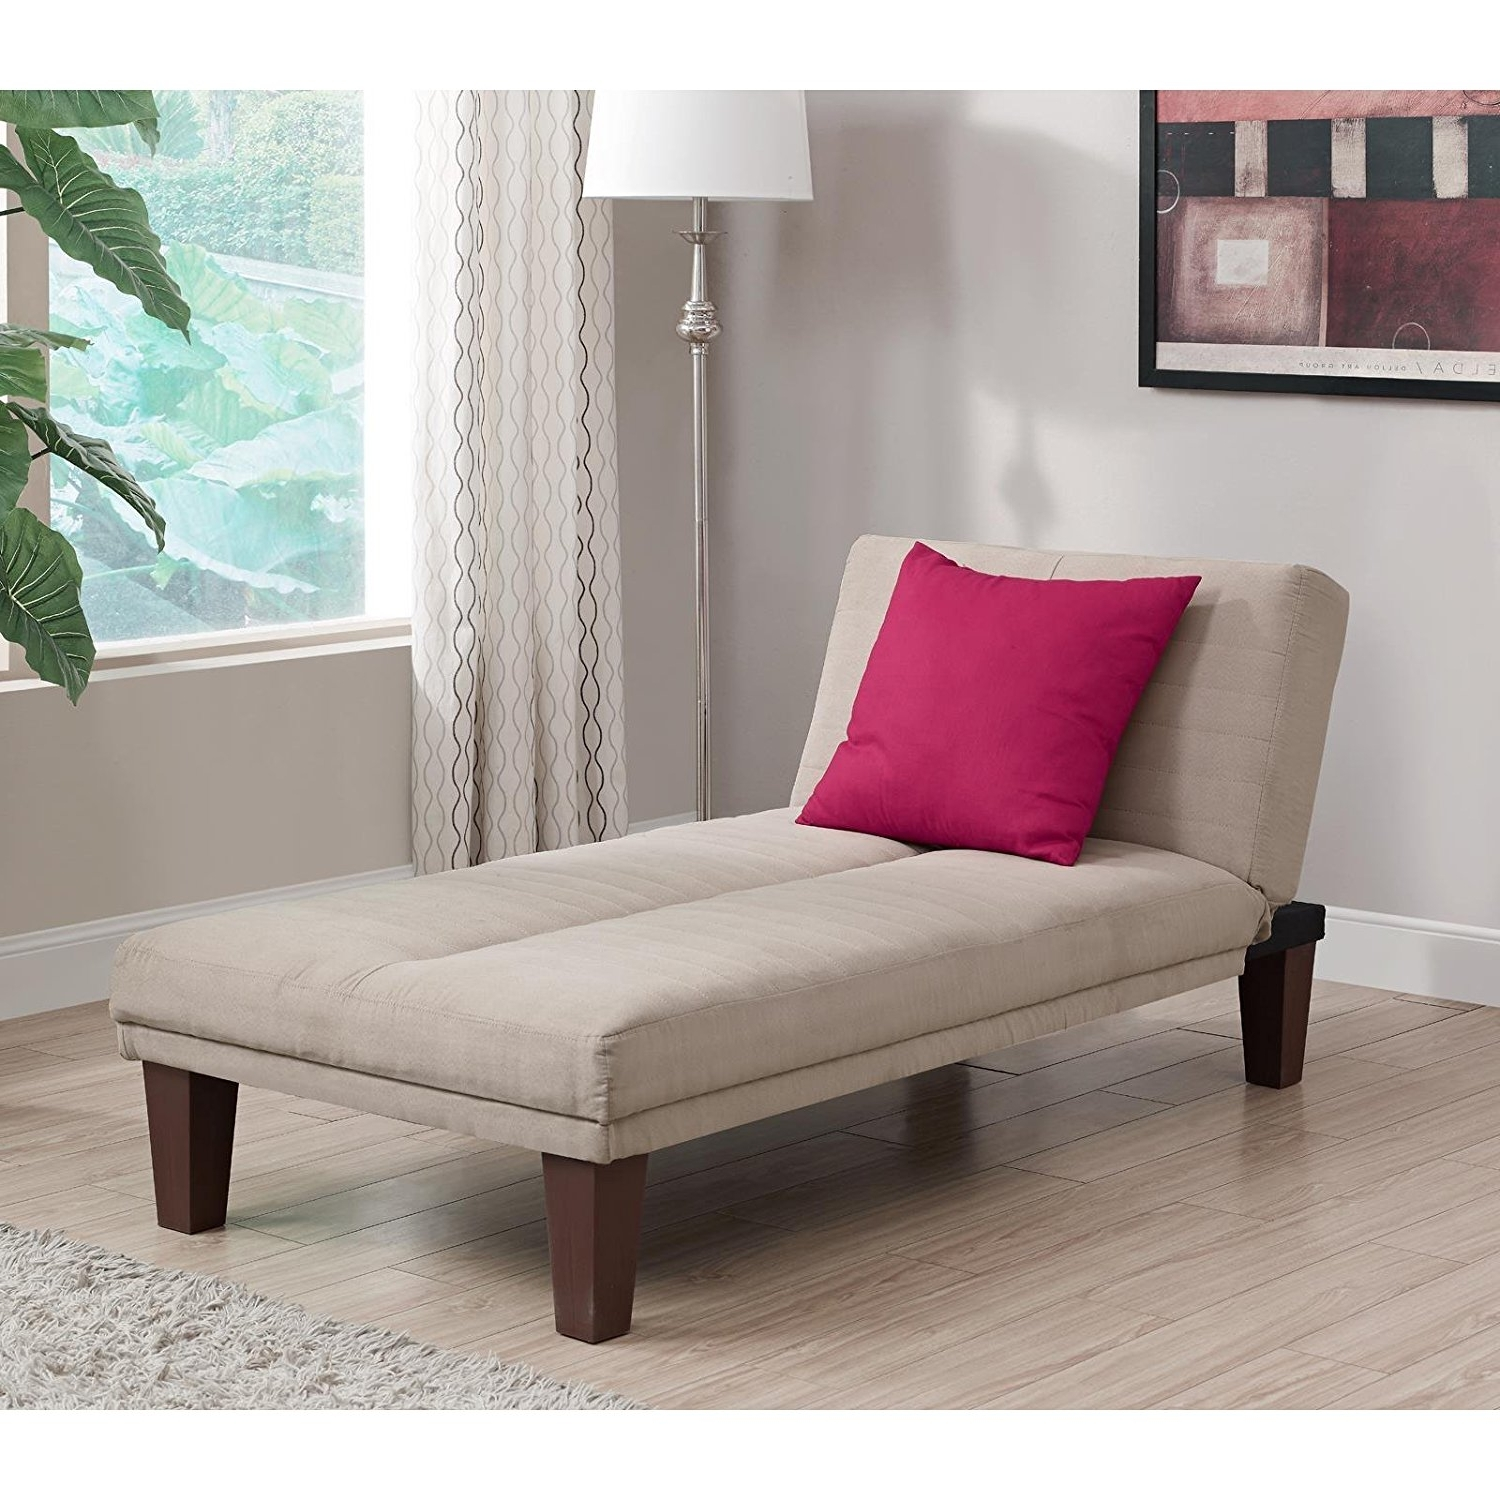 Amazon: Contemporary Chaise Lounge – Seat Couch Sleeper Indoor Throughout Most Recent Chaise Lounge Beds (View 1 of 15)